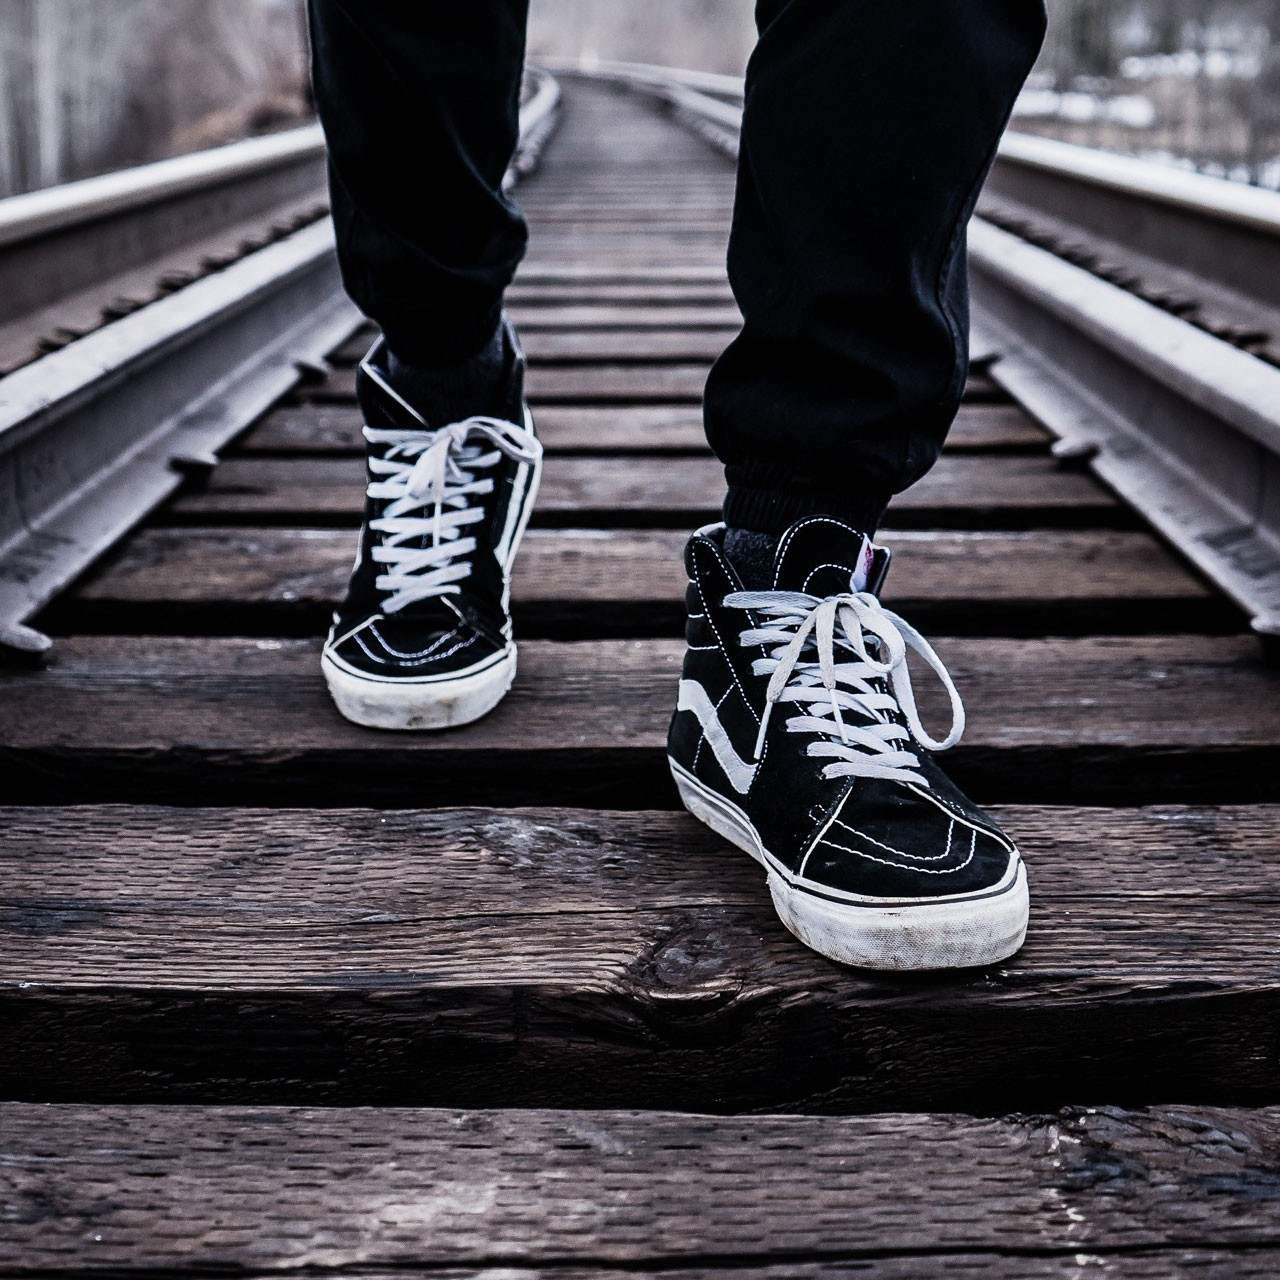 Sneakers homme, chaussures homme basket à la mode, sneakers : Sports-loisirs